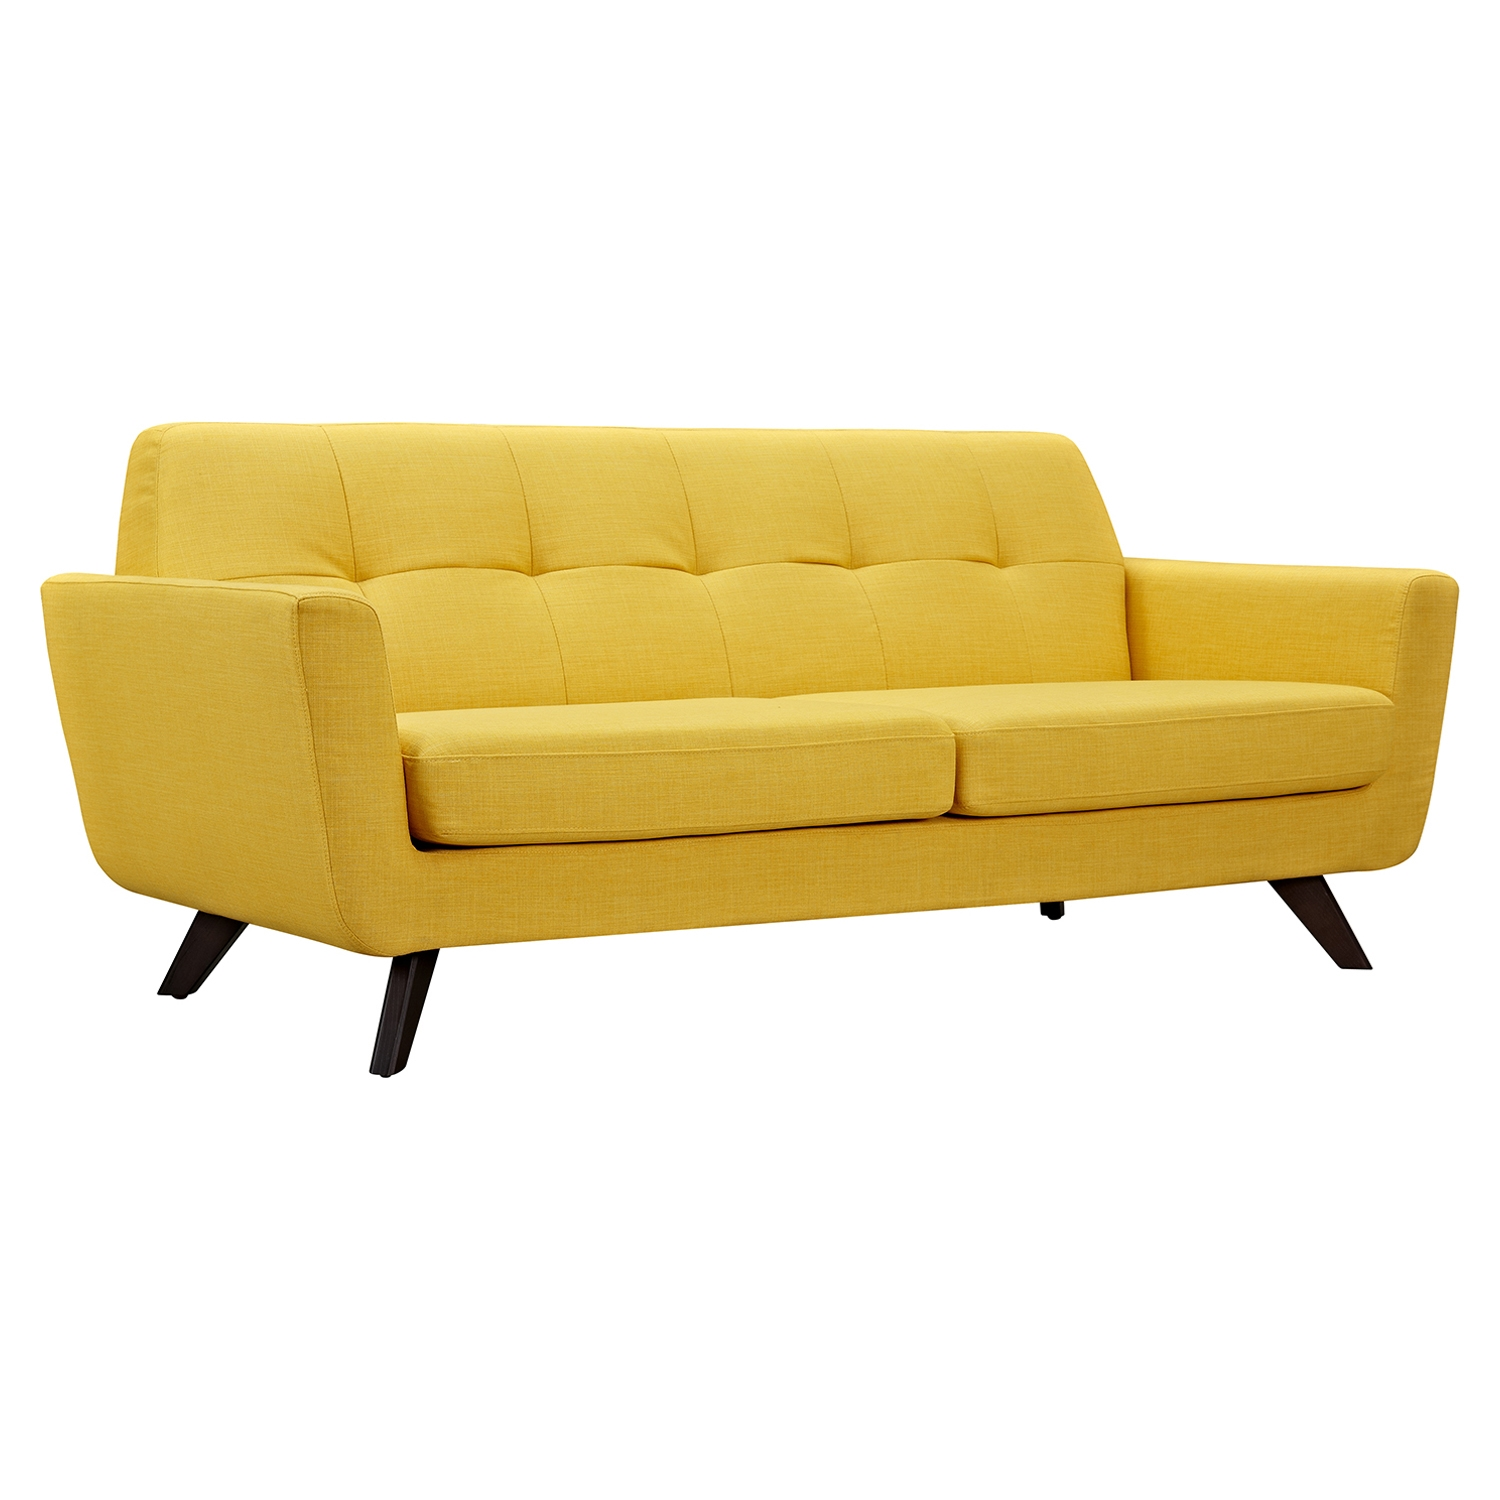 Dania Tufted Upholstery Sofa Papaya Yellow Dcg Stores